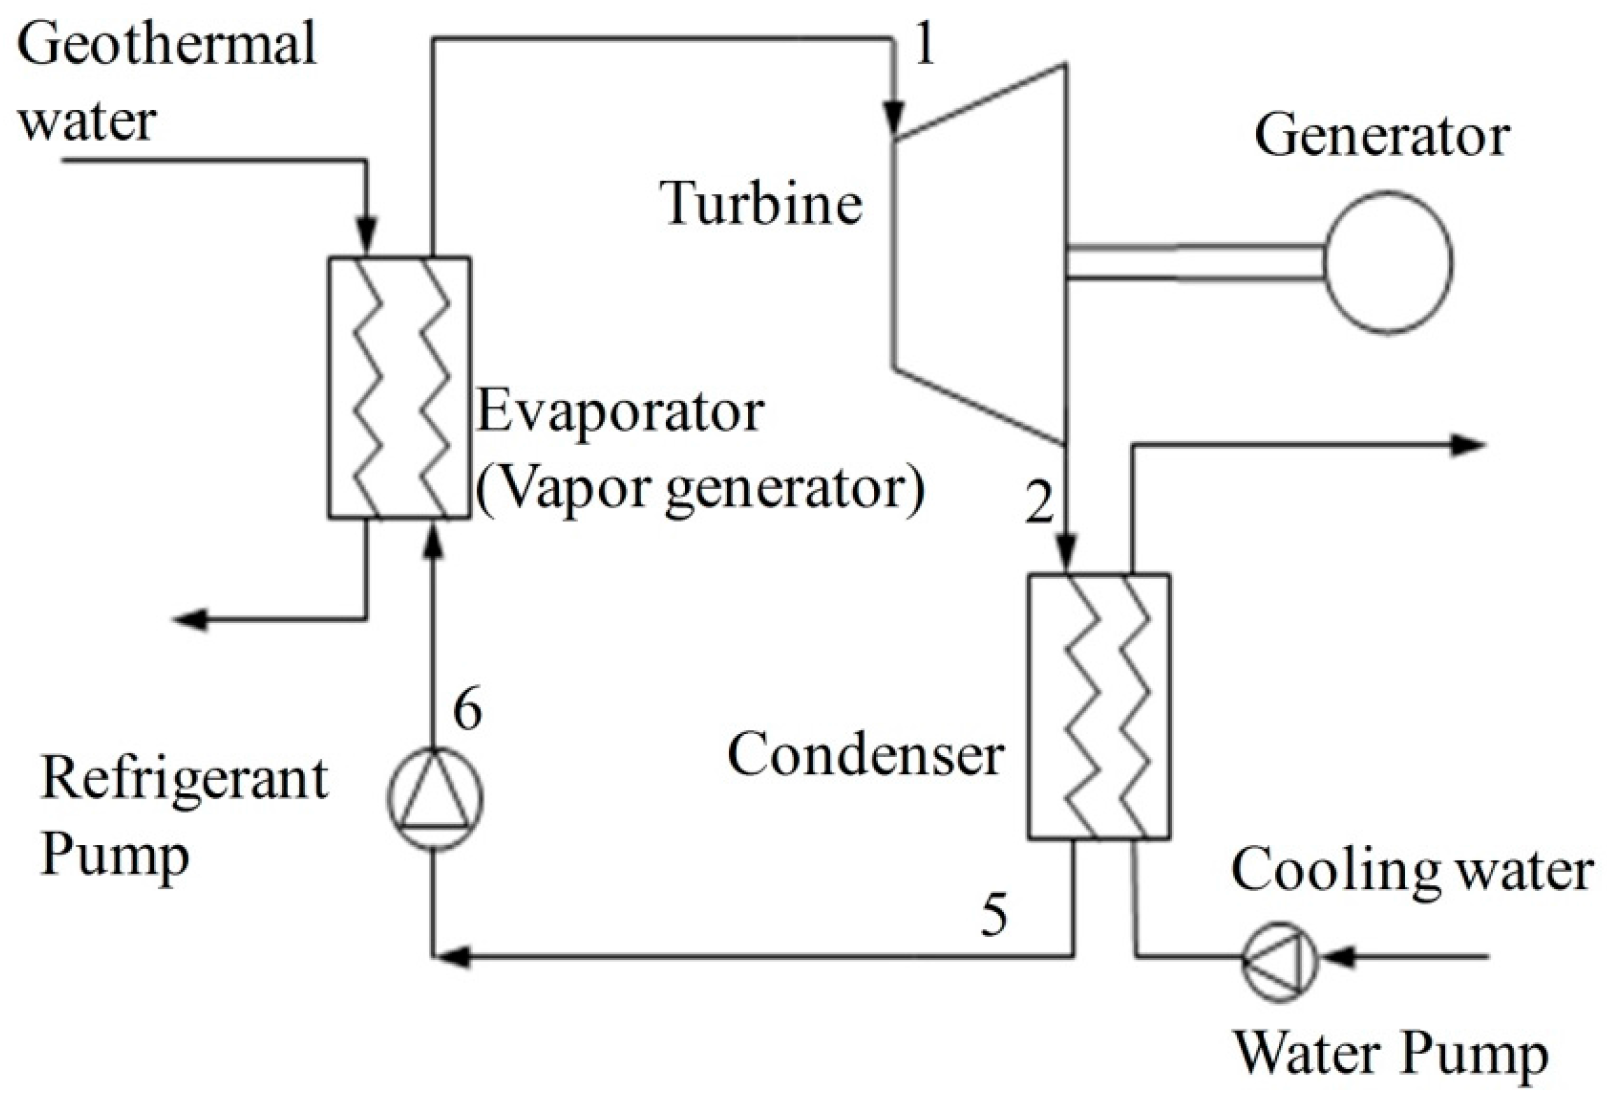 Snap Toshiba Concludes Agreement On Geothermal Power Generation Plant Diagram Schematic Of Rv Wiring